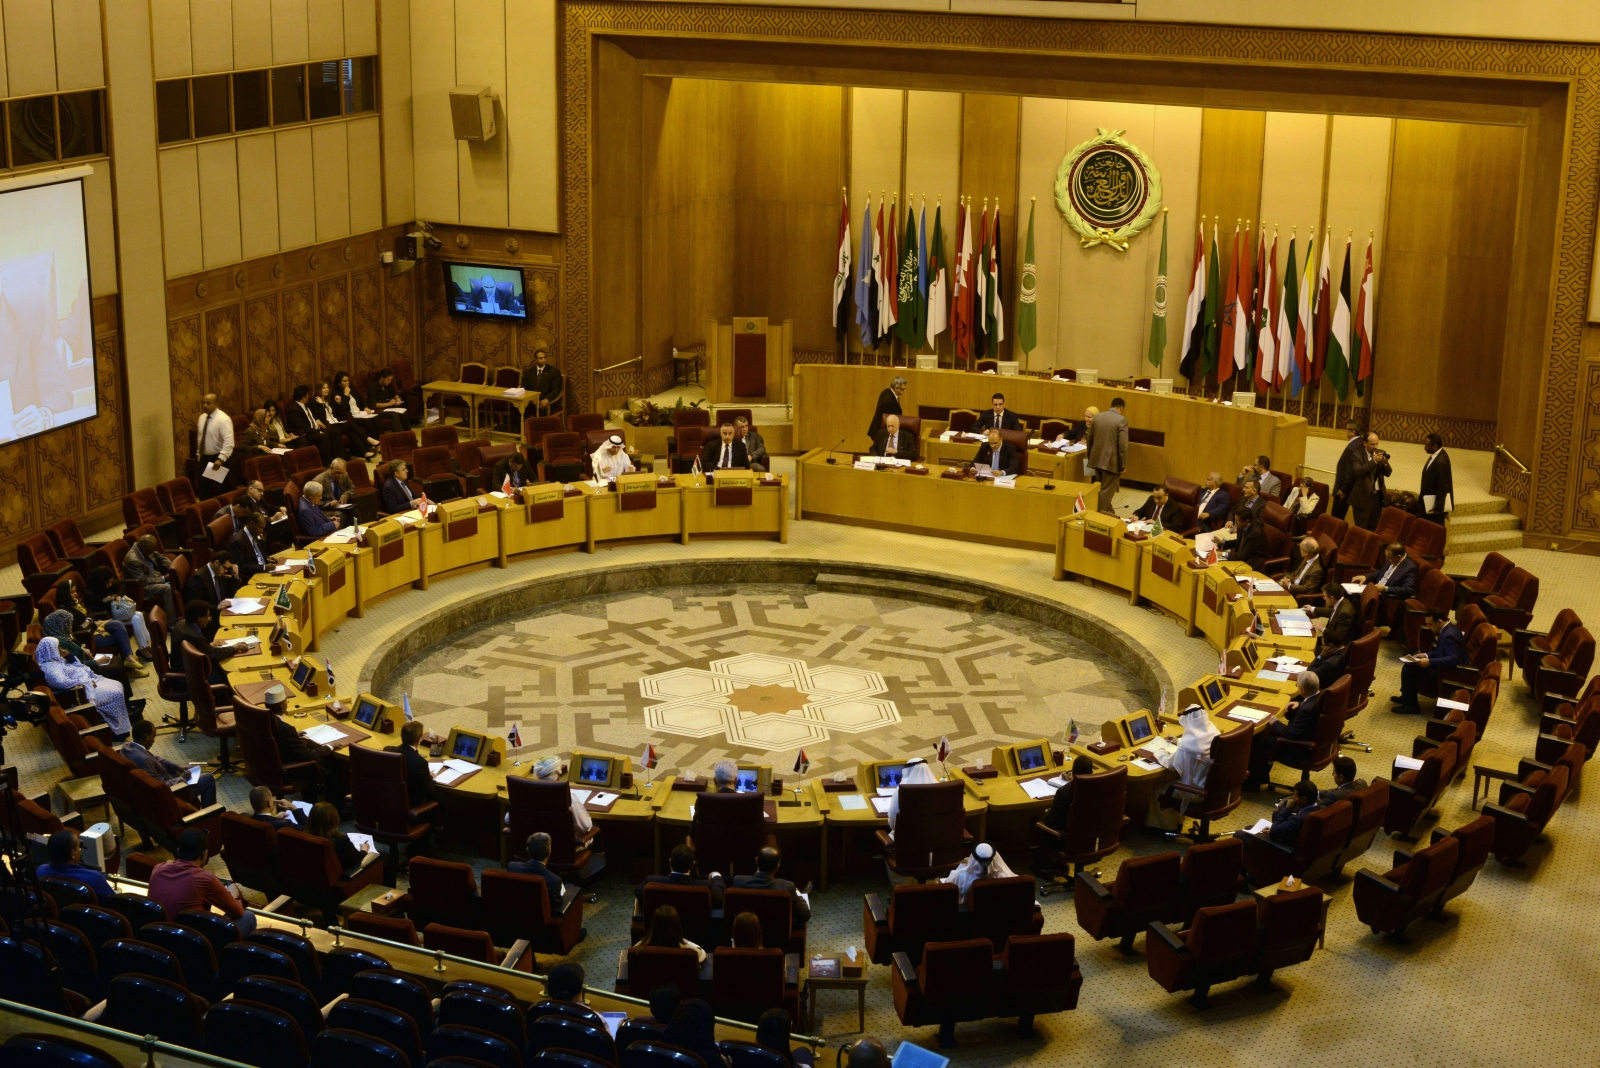 Arab League